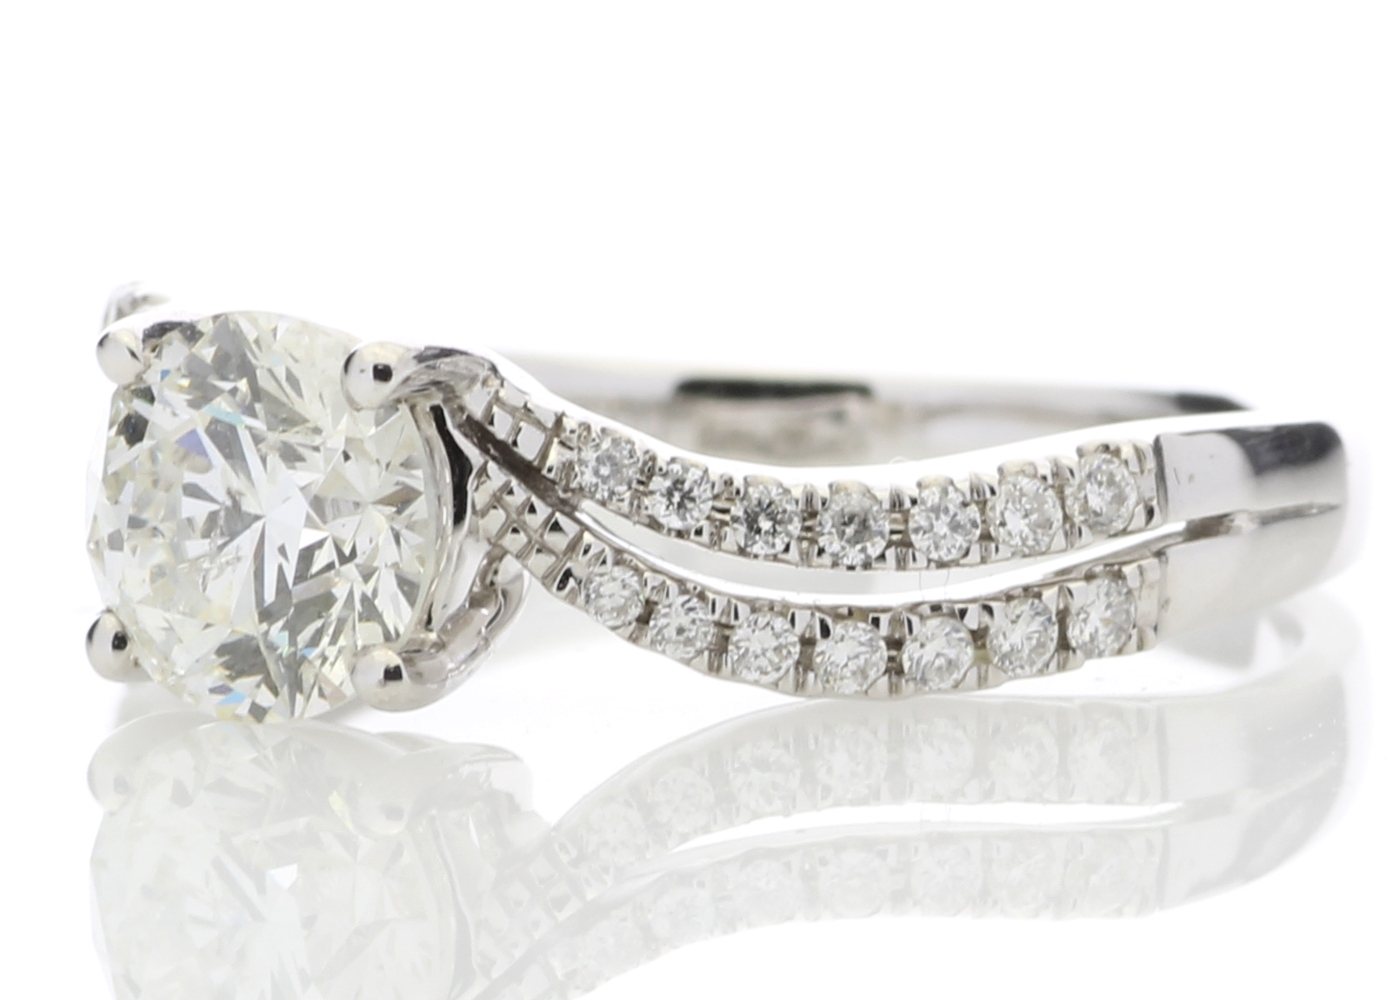 18ct White Gold Solitaire Diamond Ring With Two Rows Shoulder Set 1.31 Carats - Image 2 of 5